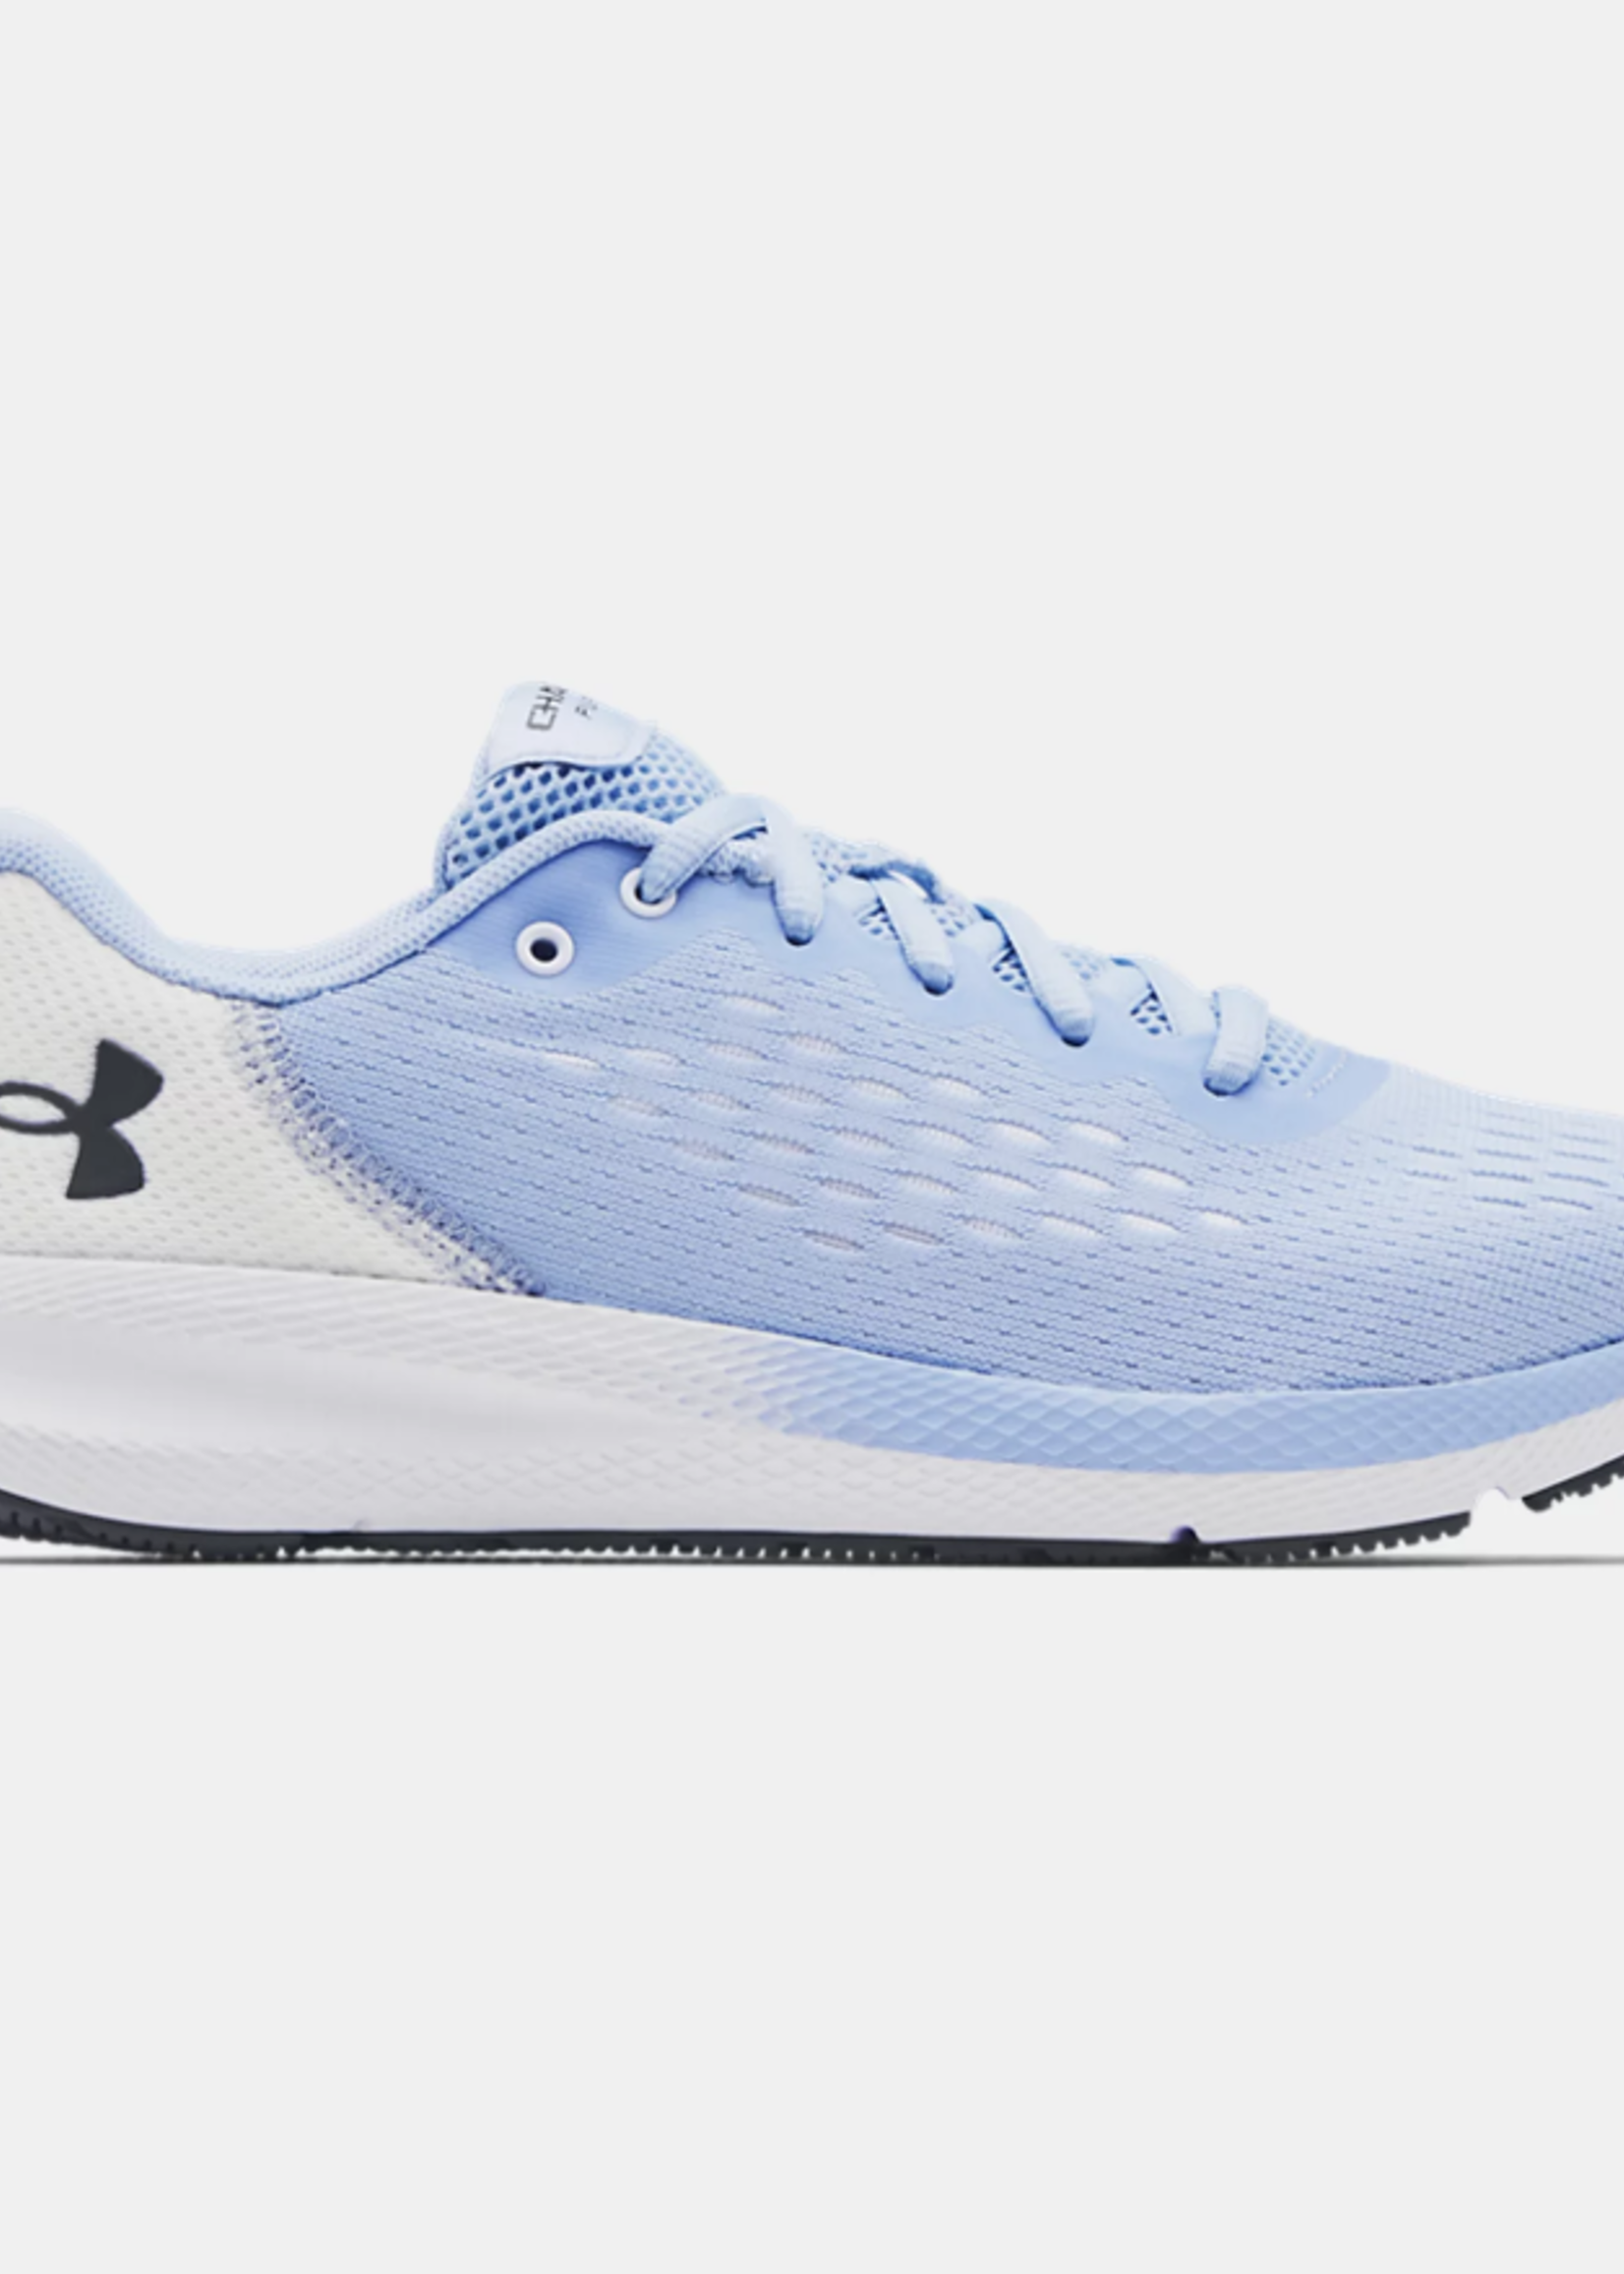 Under Armour WOMEN'S UA CHARGED PURSUIT 2 SE RUNNING SHOES 3023866